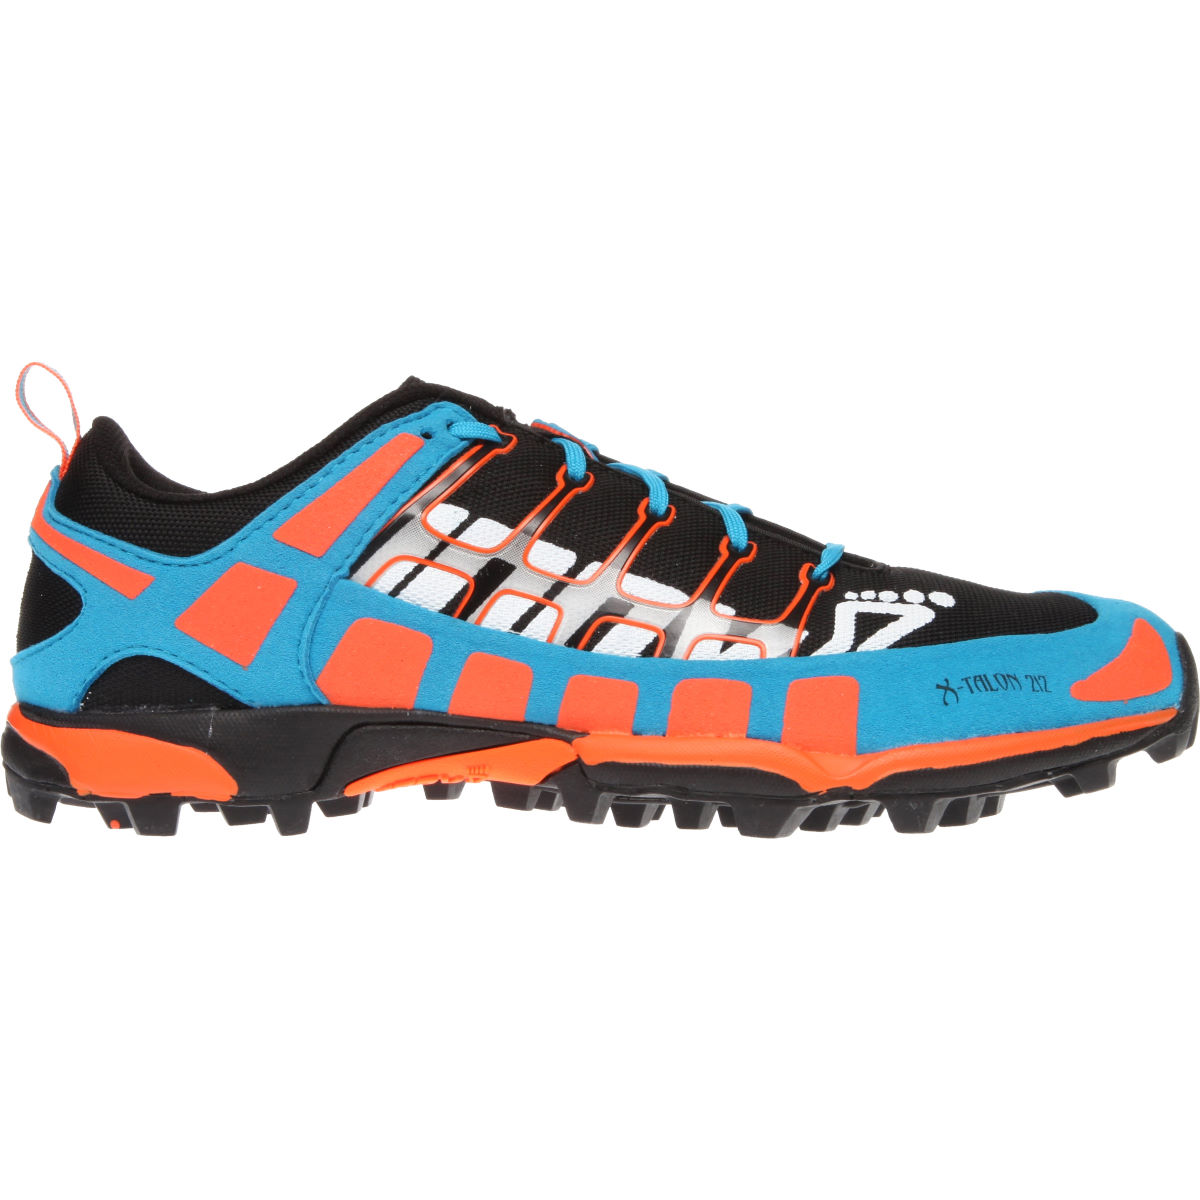 Inov-8 Inov-8 X-Talon 212 Precision Fit Shoes - AW14